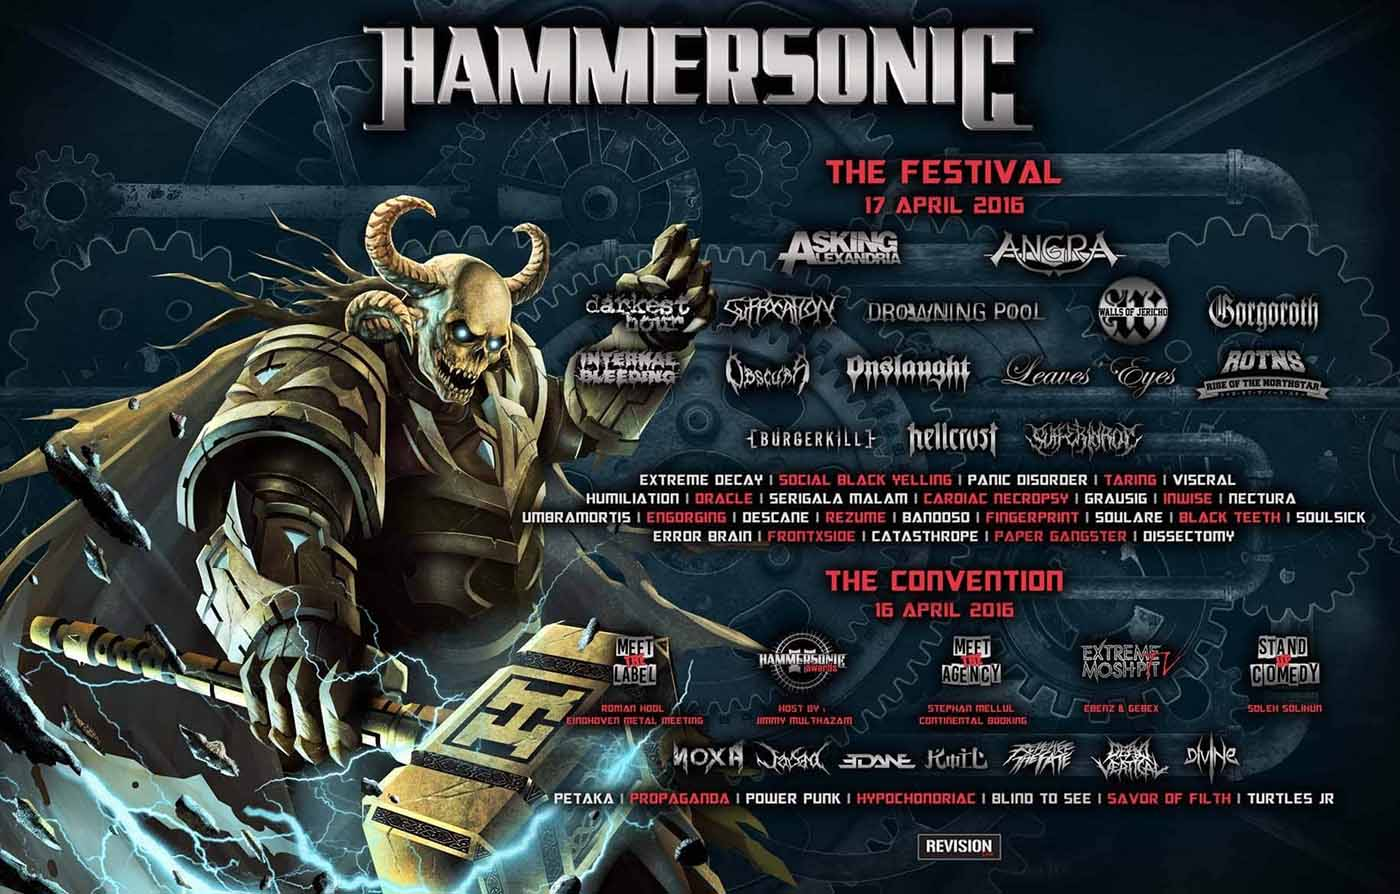 Hammersonic 2016 Rundown